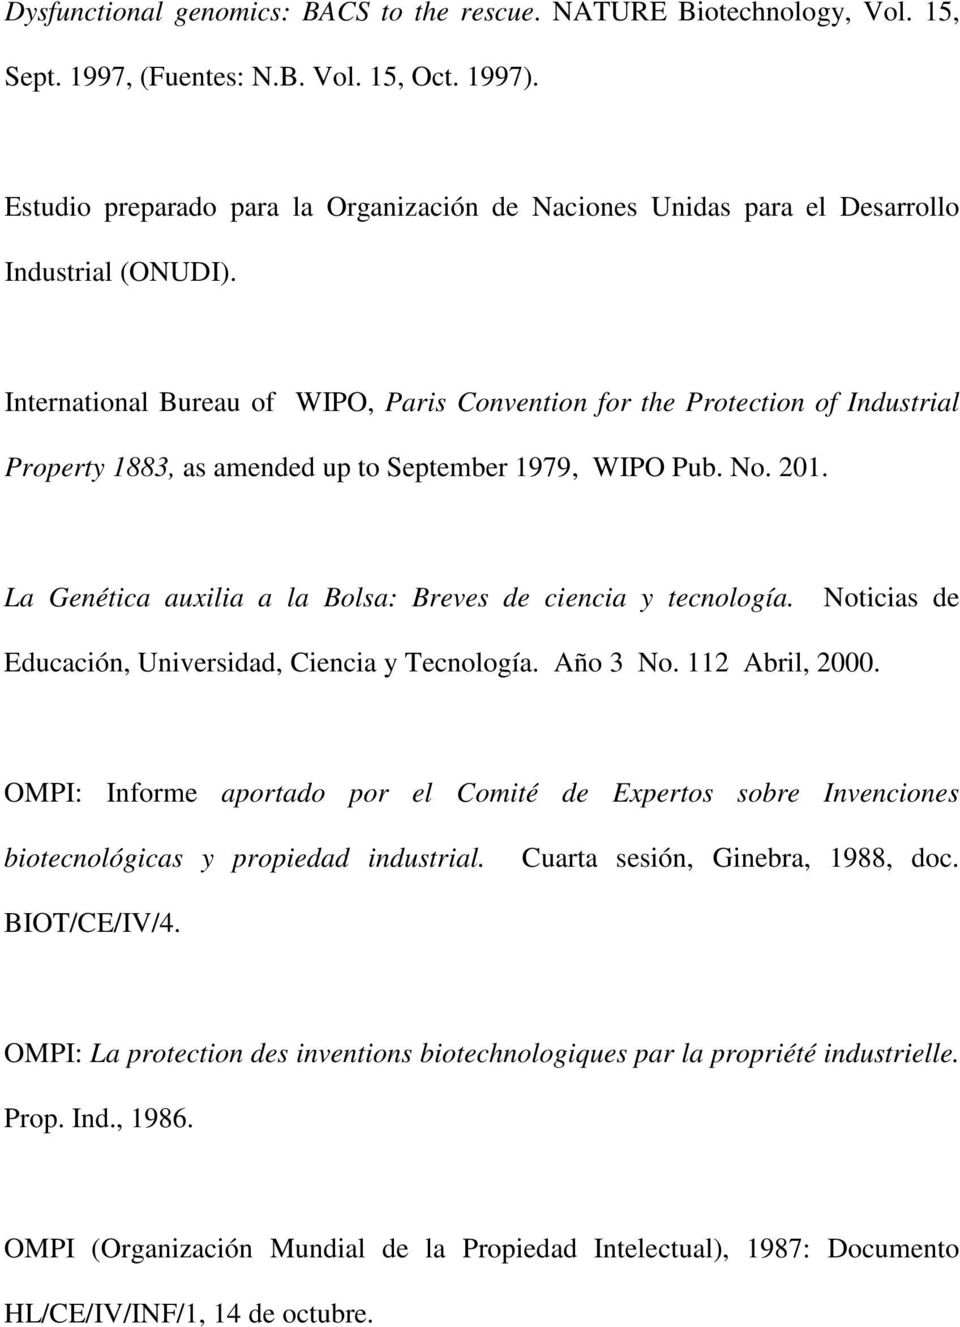 International Bureau of WIPO, Paris Convention for the Protection of Industrial Property 1883, as amended up to September 1979, WIPO Pub. No. 201.